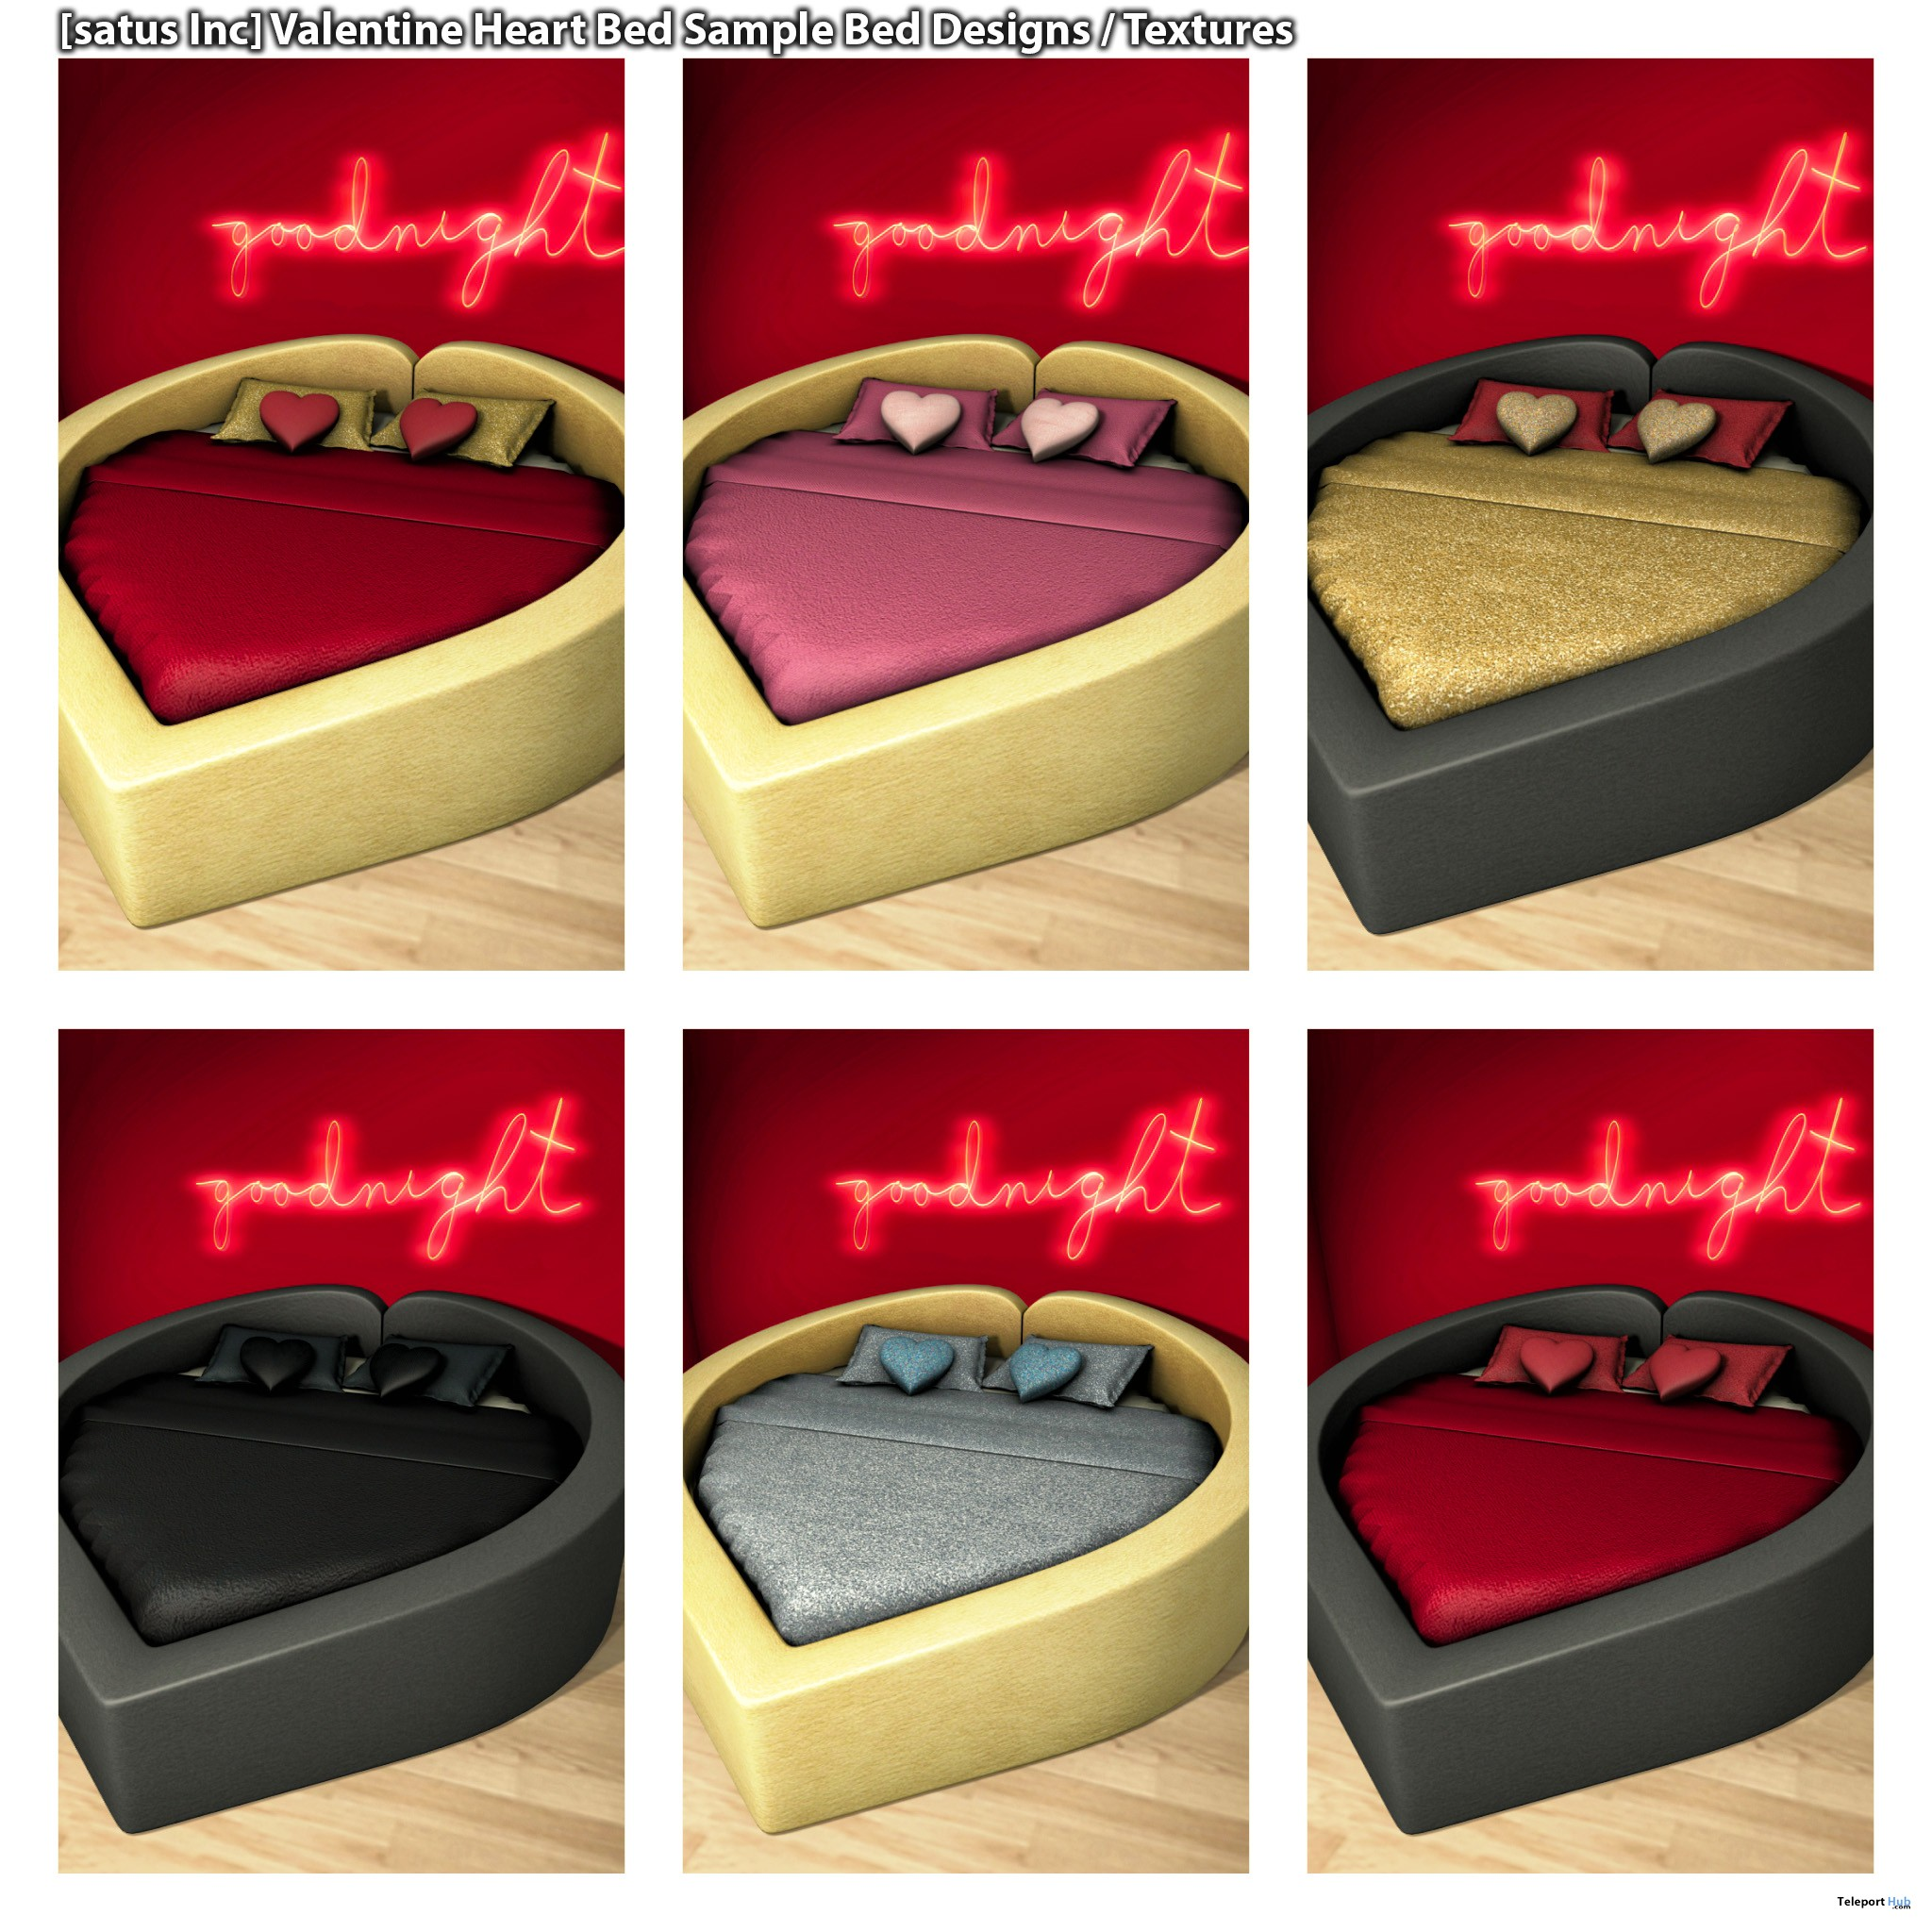 New Release: Valentine Heart Bed by [satus Inc] - Teleport Hub - teleporthub.com